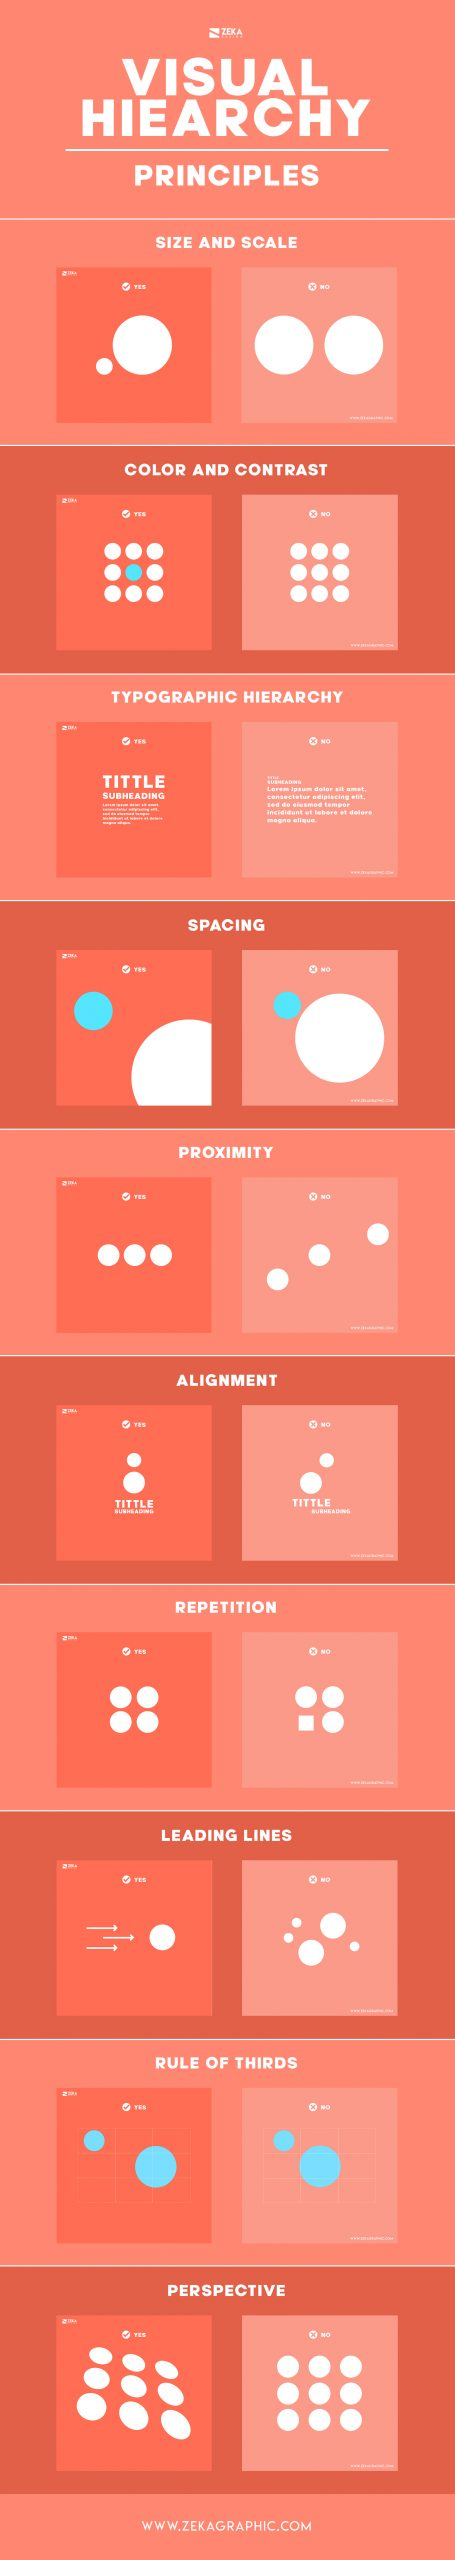 Visual Hierarchy Graphic Design Infography Zeka Design